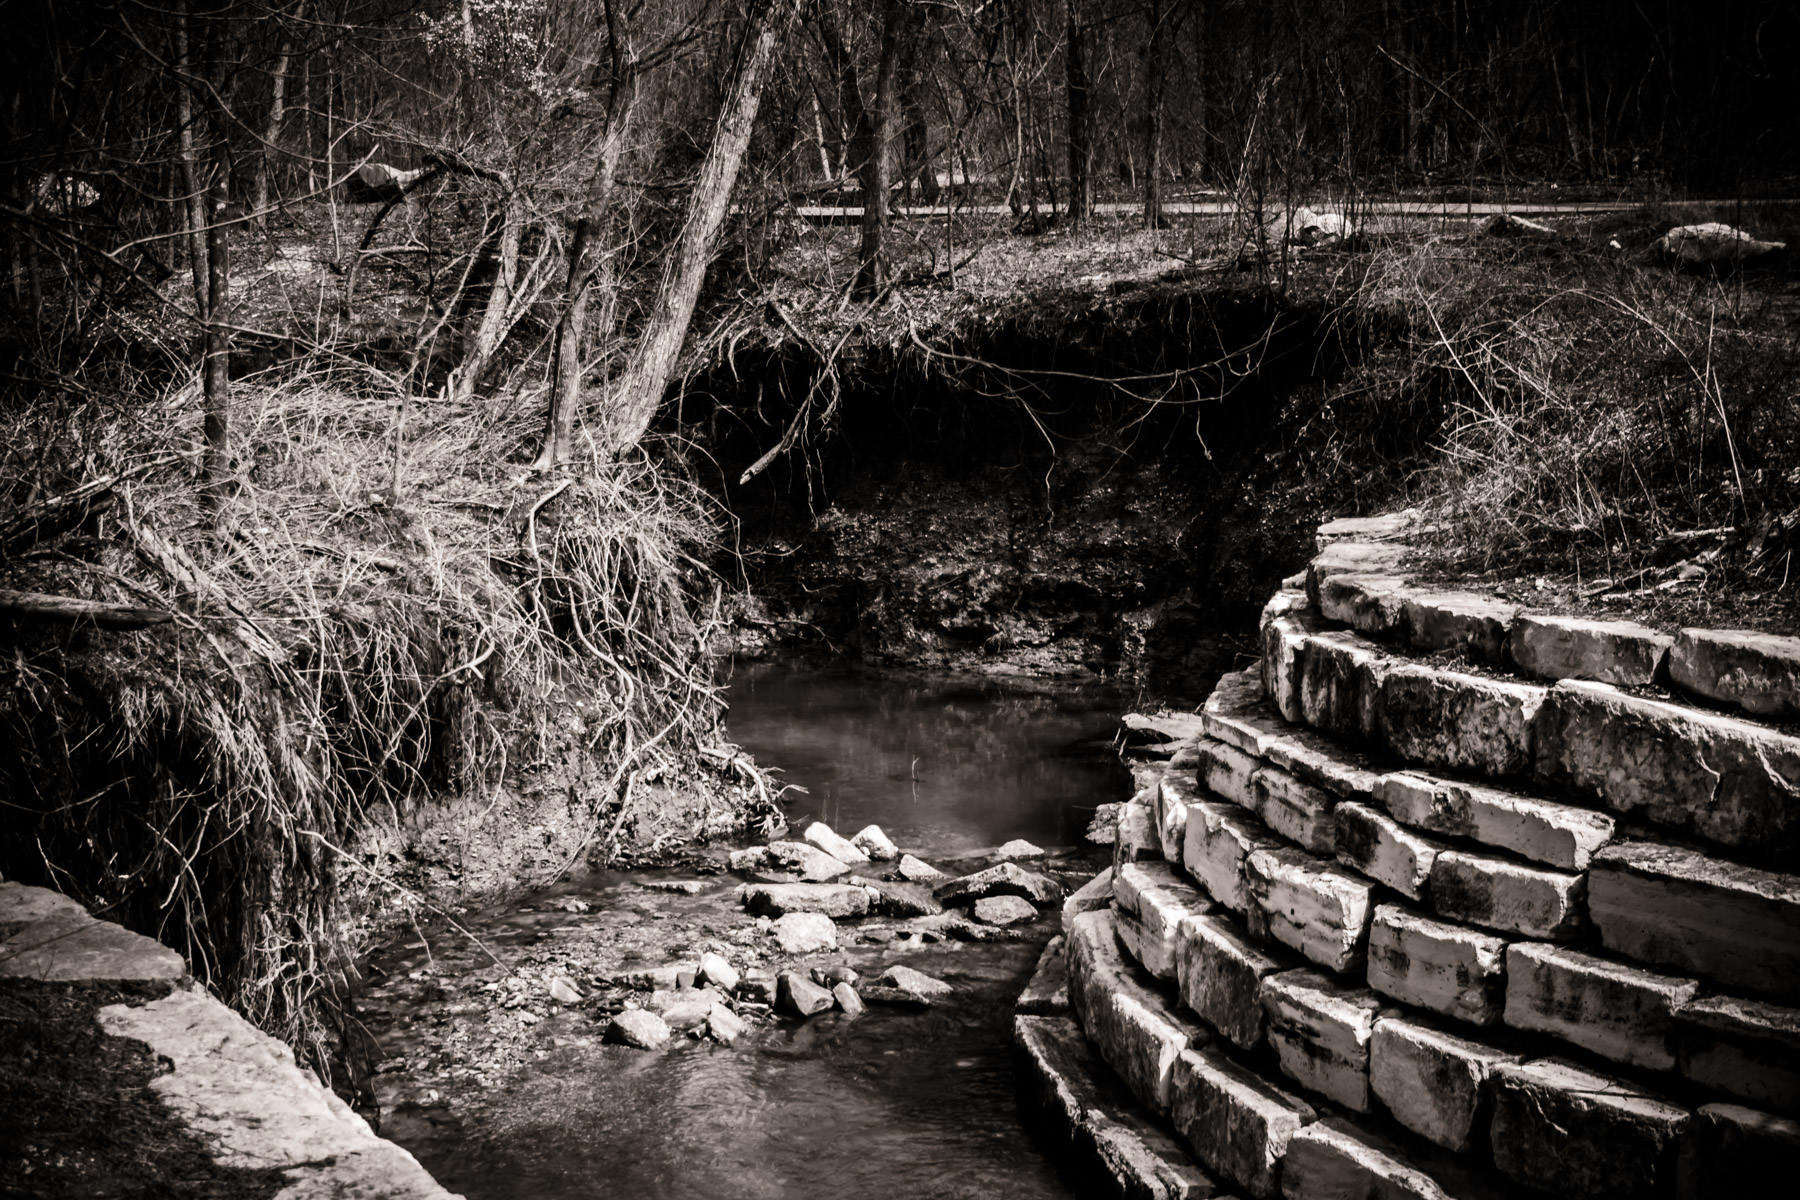 Stonework along a creek at Arbor Hills Nature Preserve, Plano, Texas.